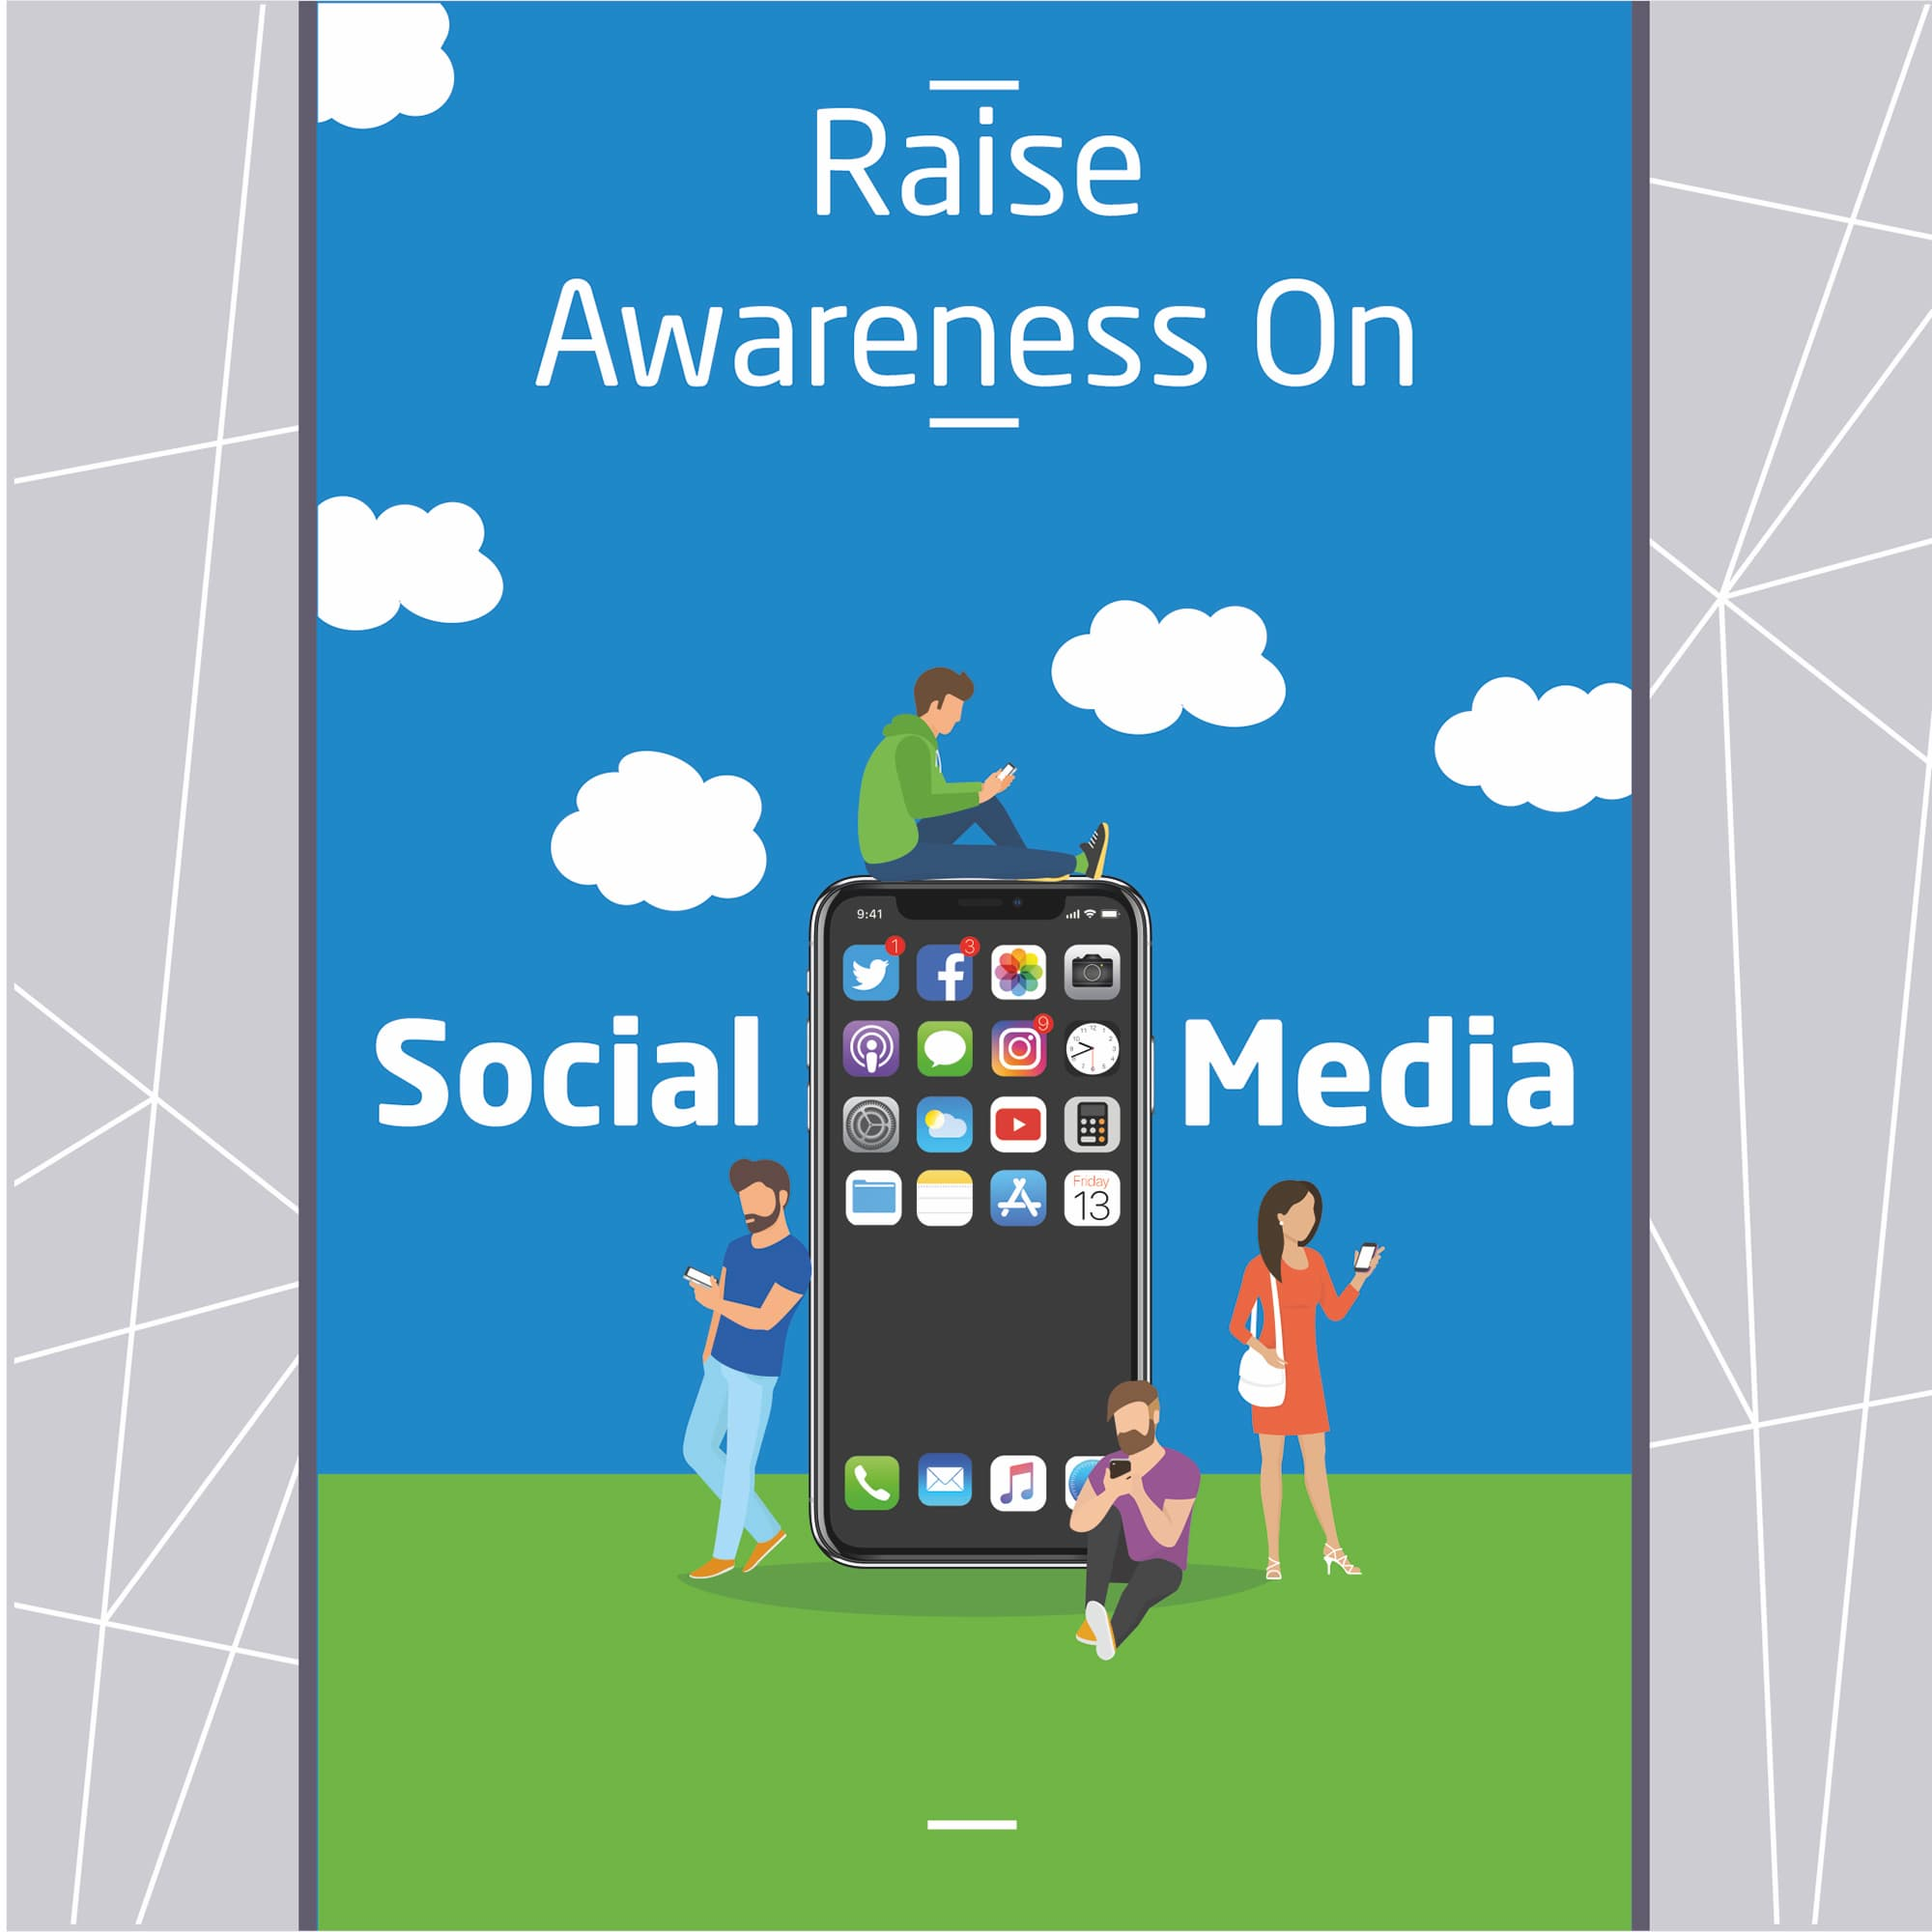 people sitting and leaning on smartphone using smartphones and laptops to follow on social media raise awareness.jpg